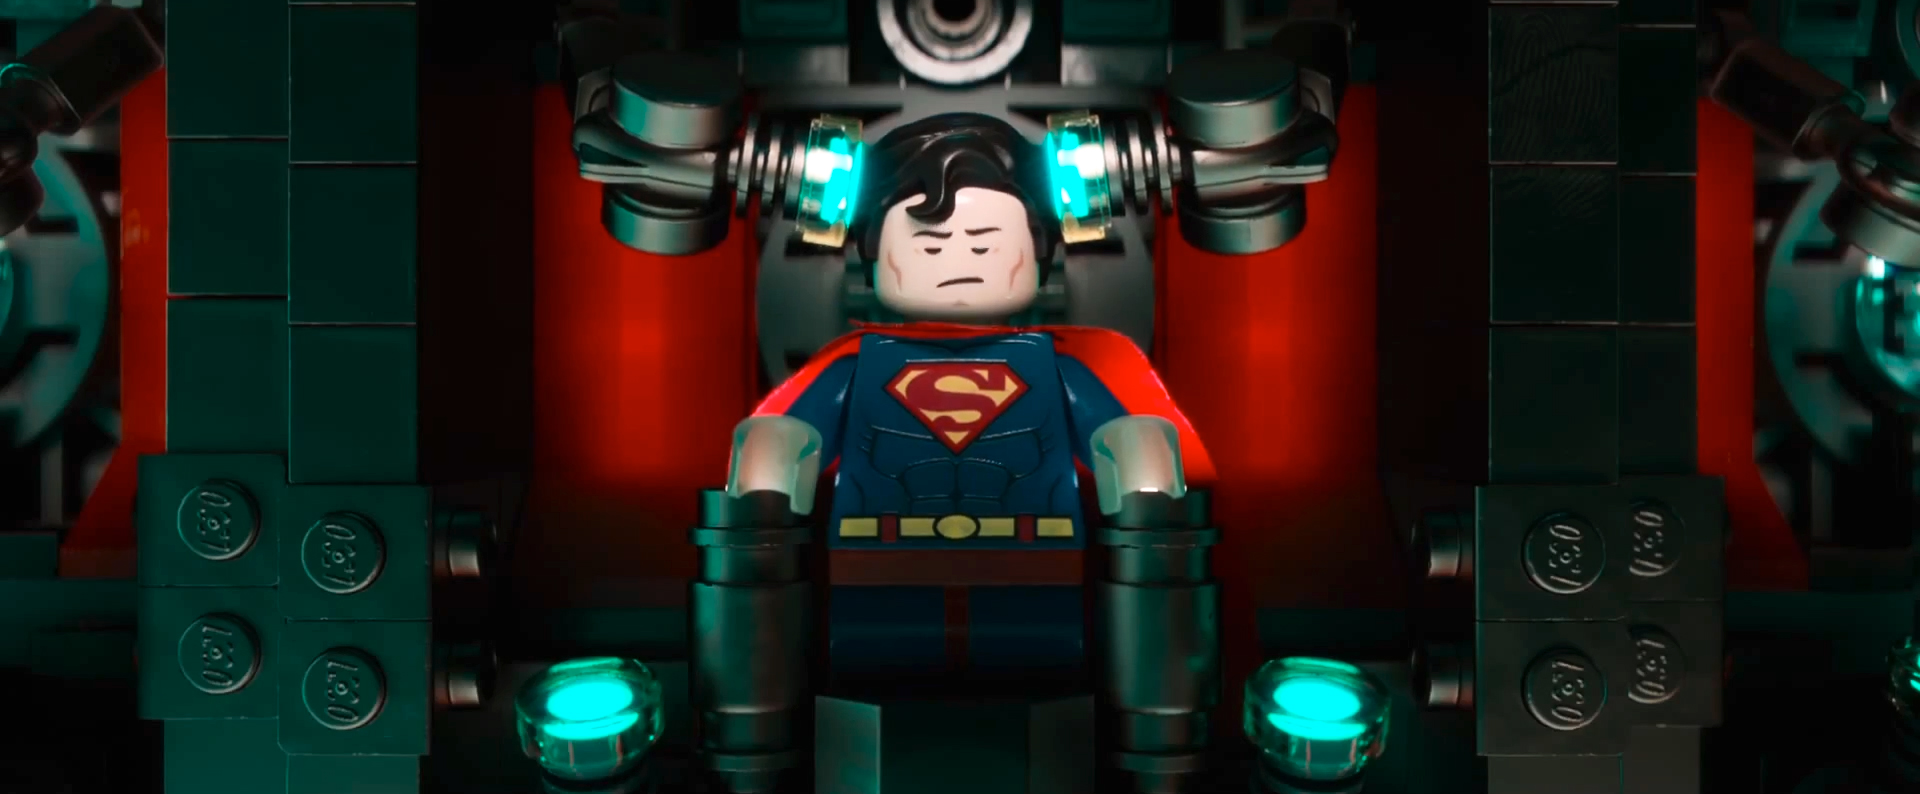 Lego Images The Lego Movie Superman Aka Man Of Plastic Hd